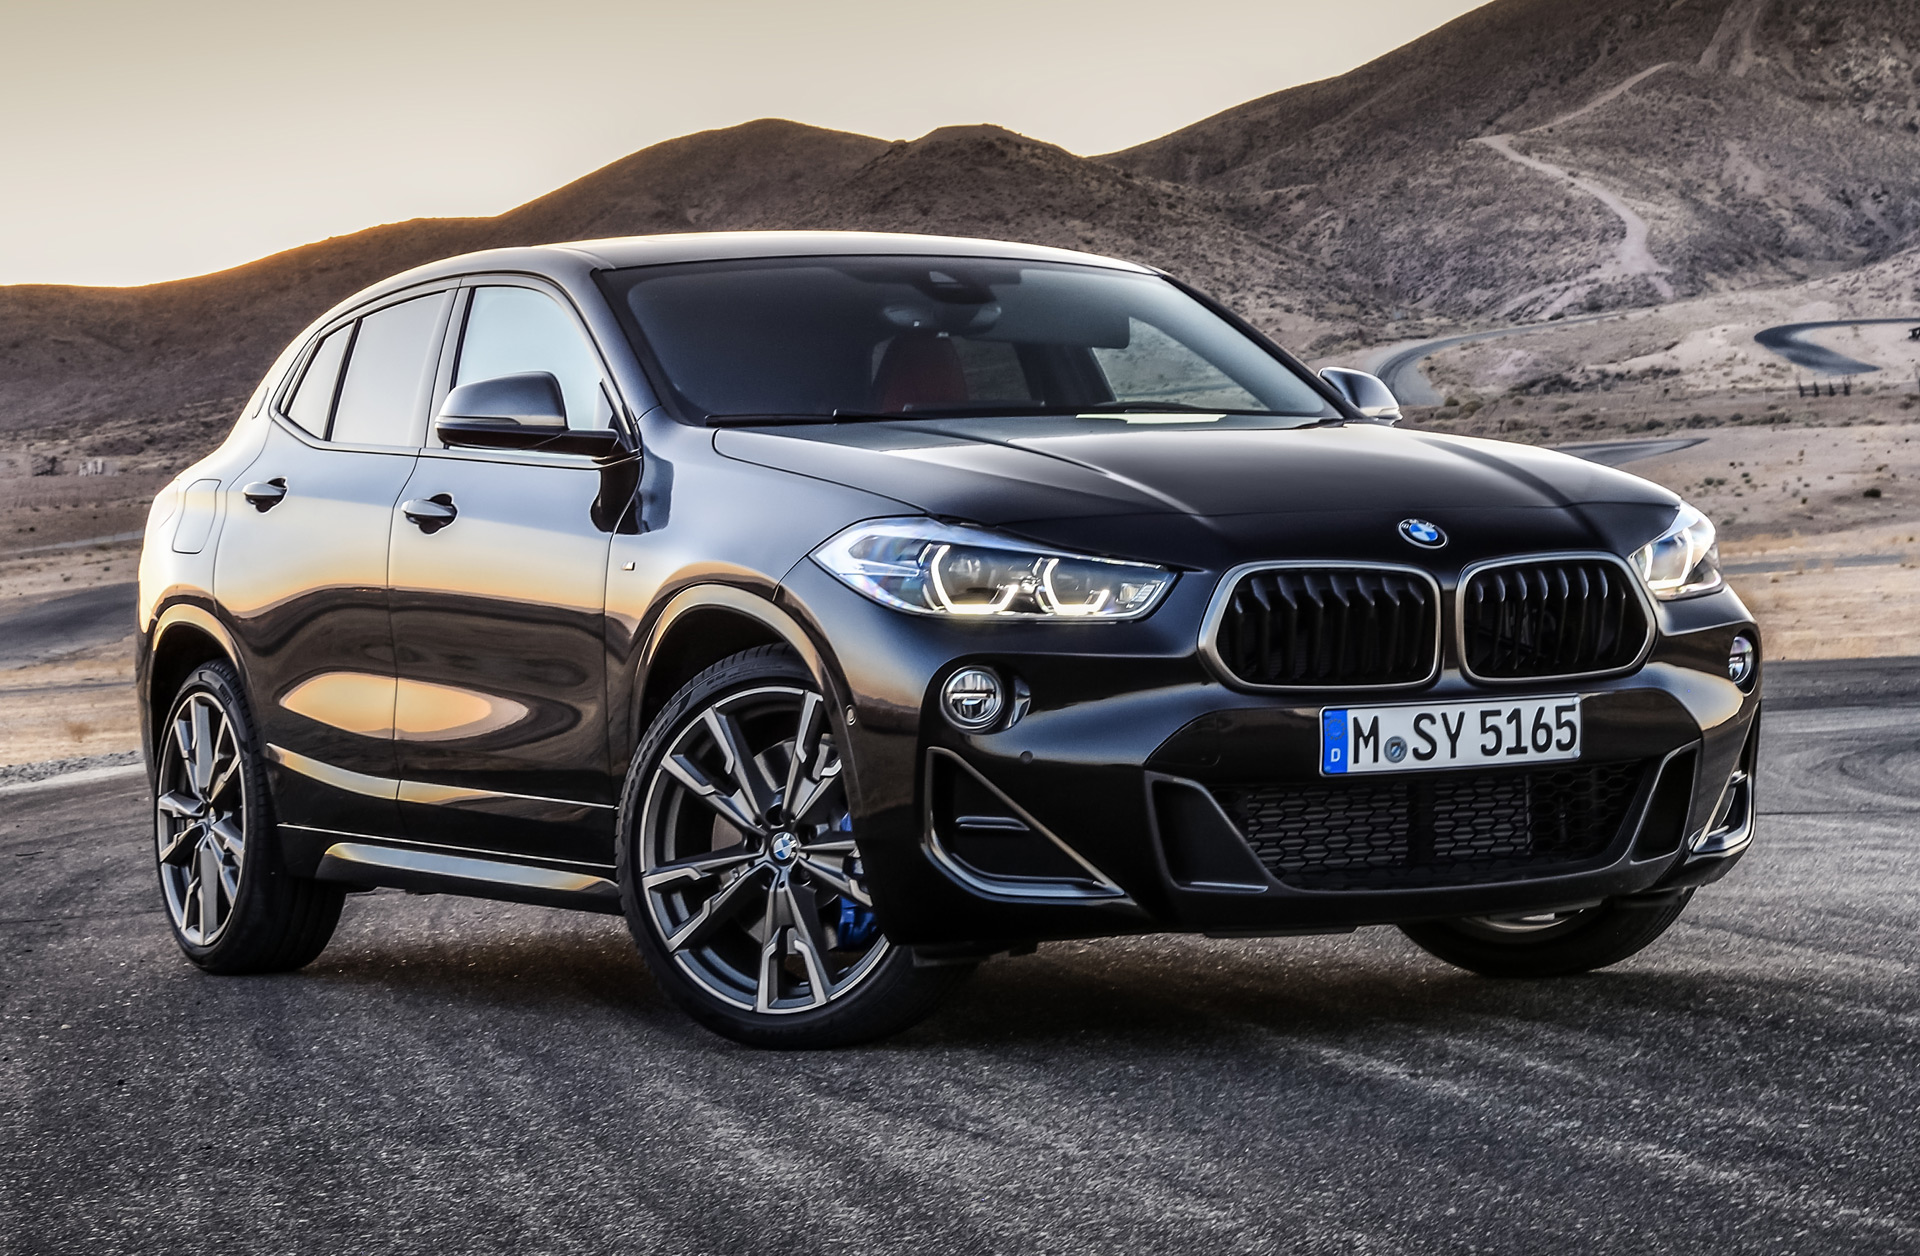 2019 Bmw X2 M35i First Drive Review High Riding Hot Hatch